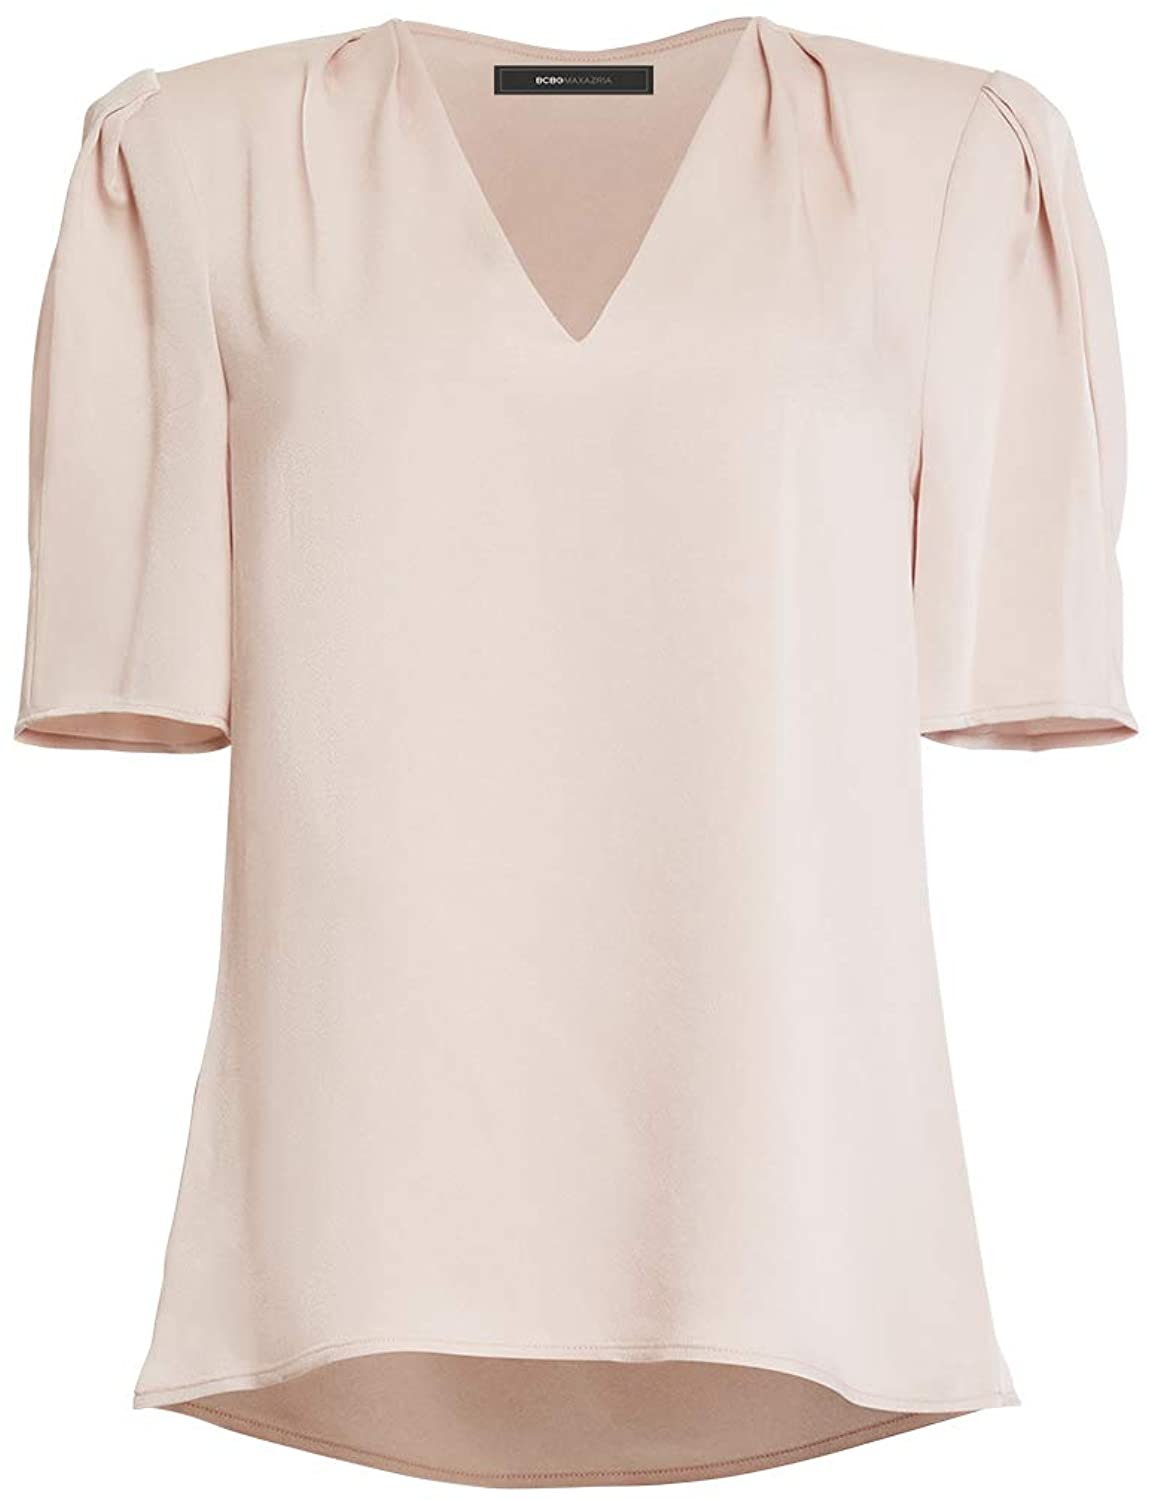 BCBGMAXAZRIA Women's V-Neck Blouse